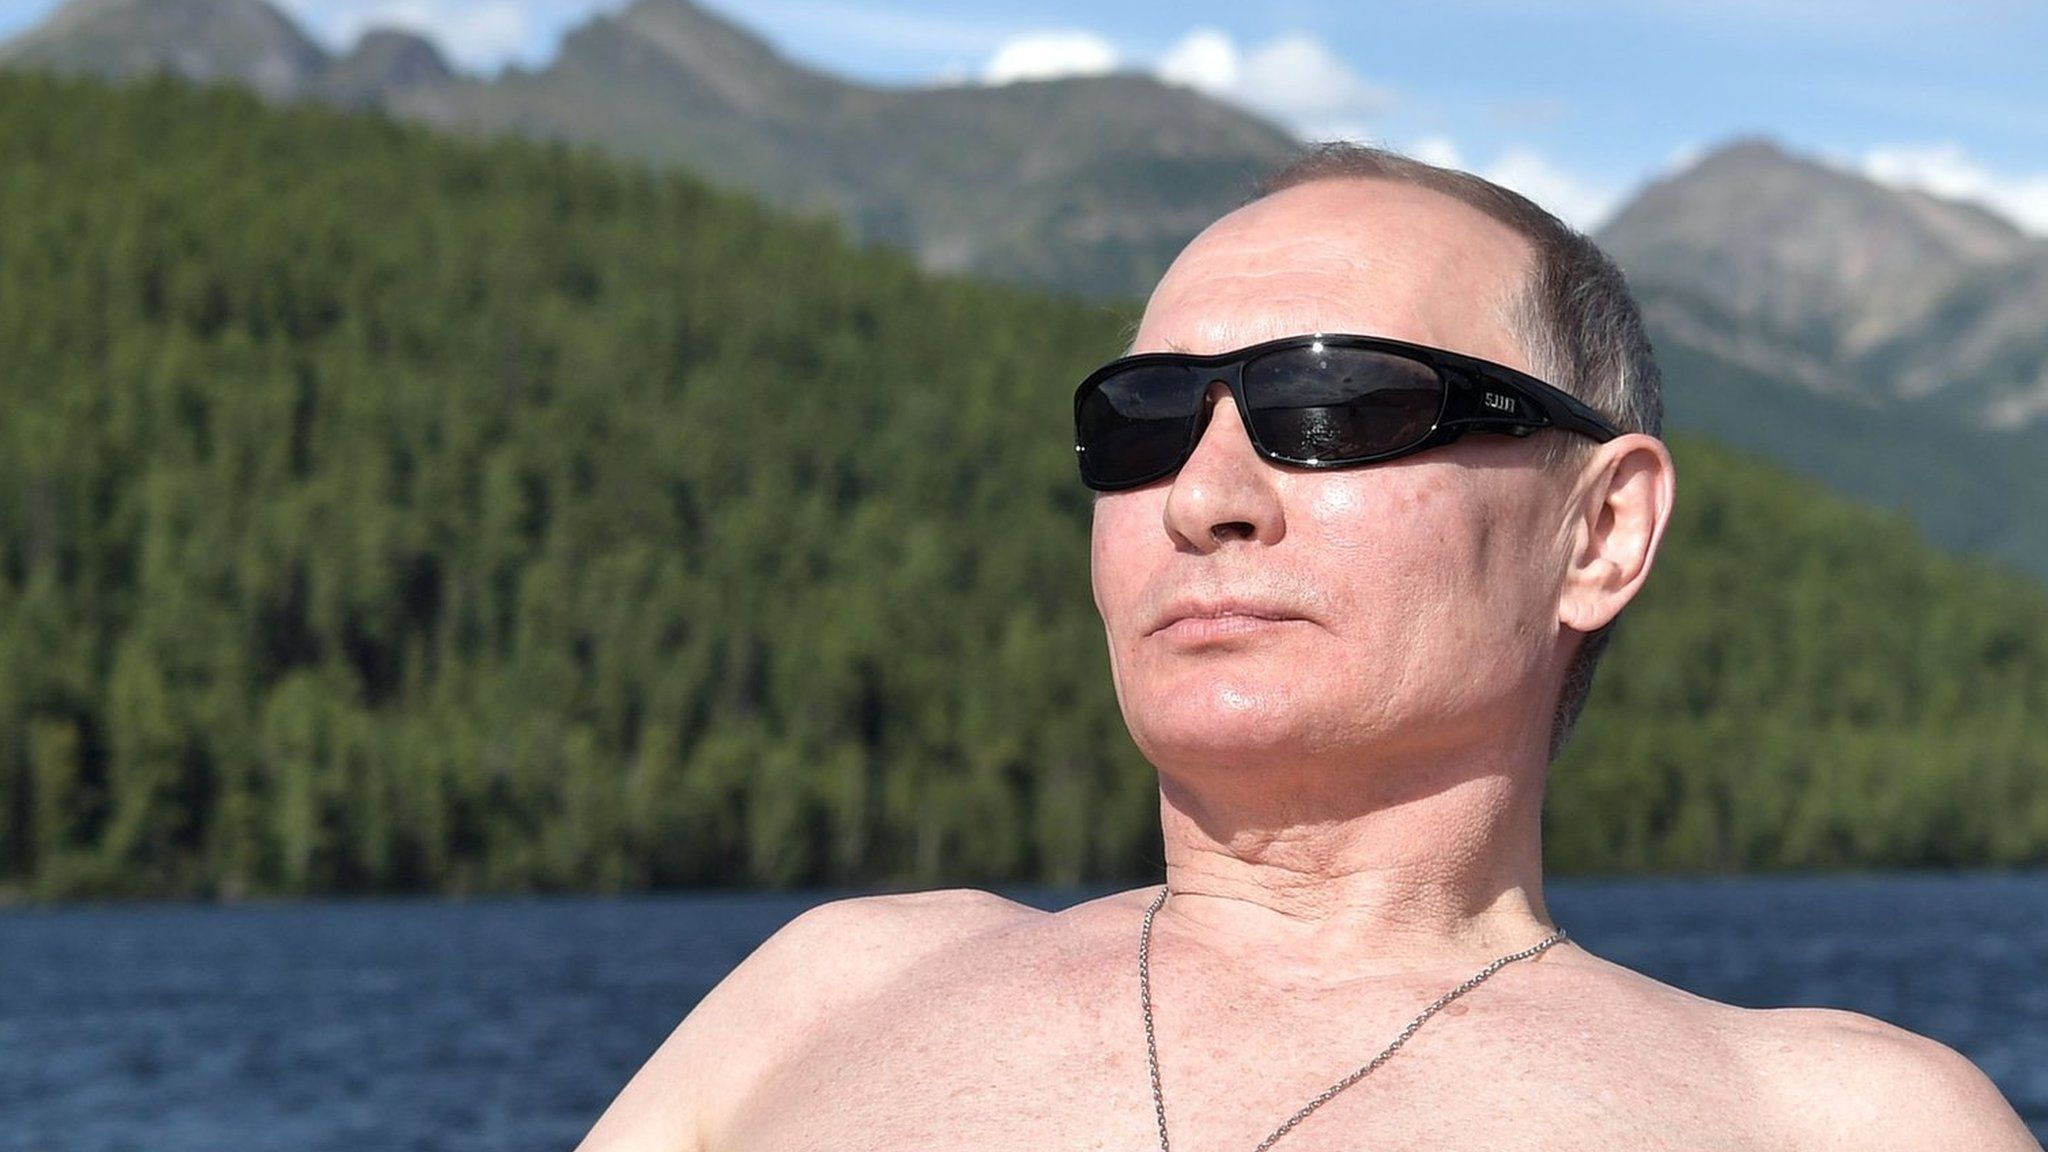 The Online Bots Behind Vladimir Putin S Birthday Wishes Bbc News